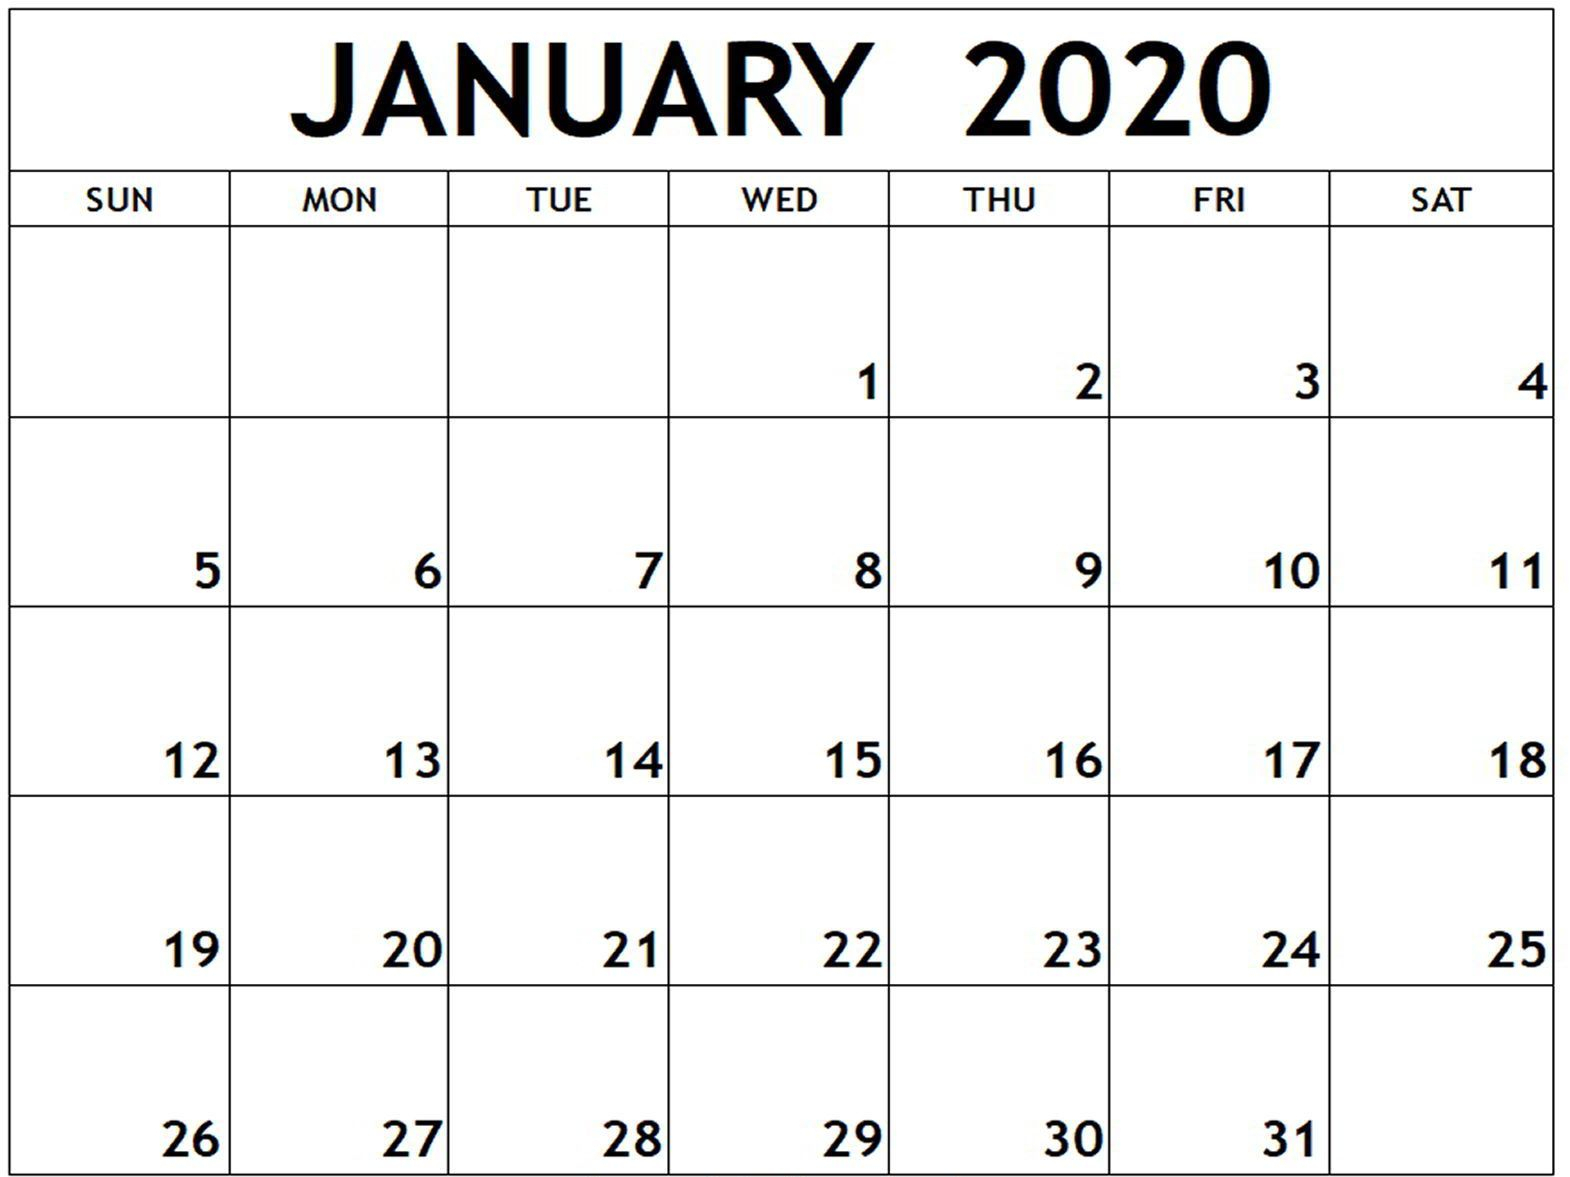 January 2020 Calendar Word Doc | Free Calendar Template pertaining to January 2020 Calendar Blank